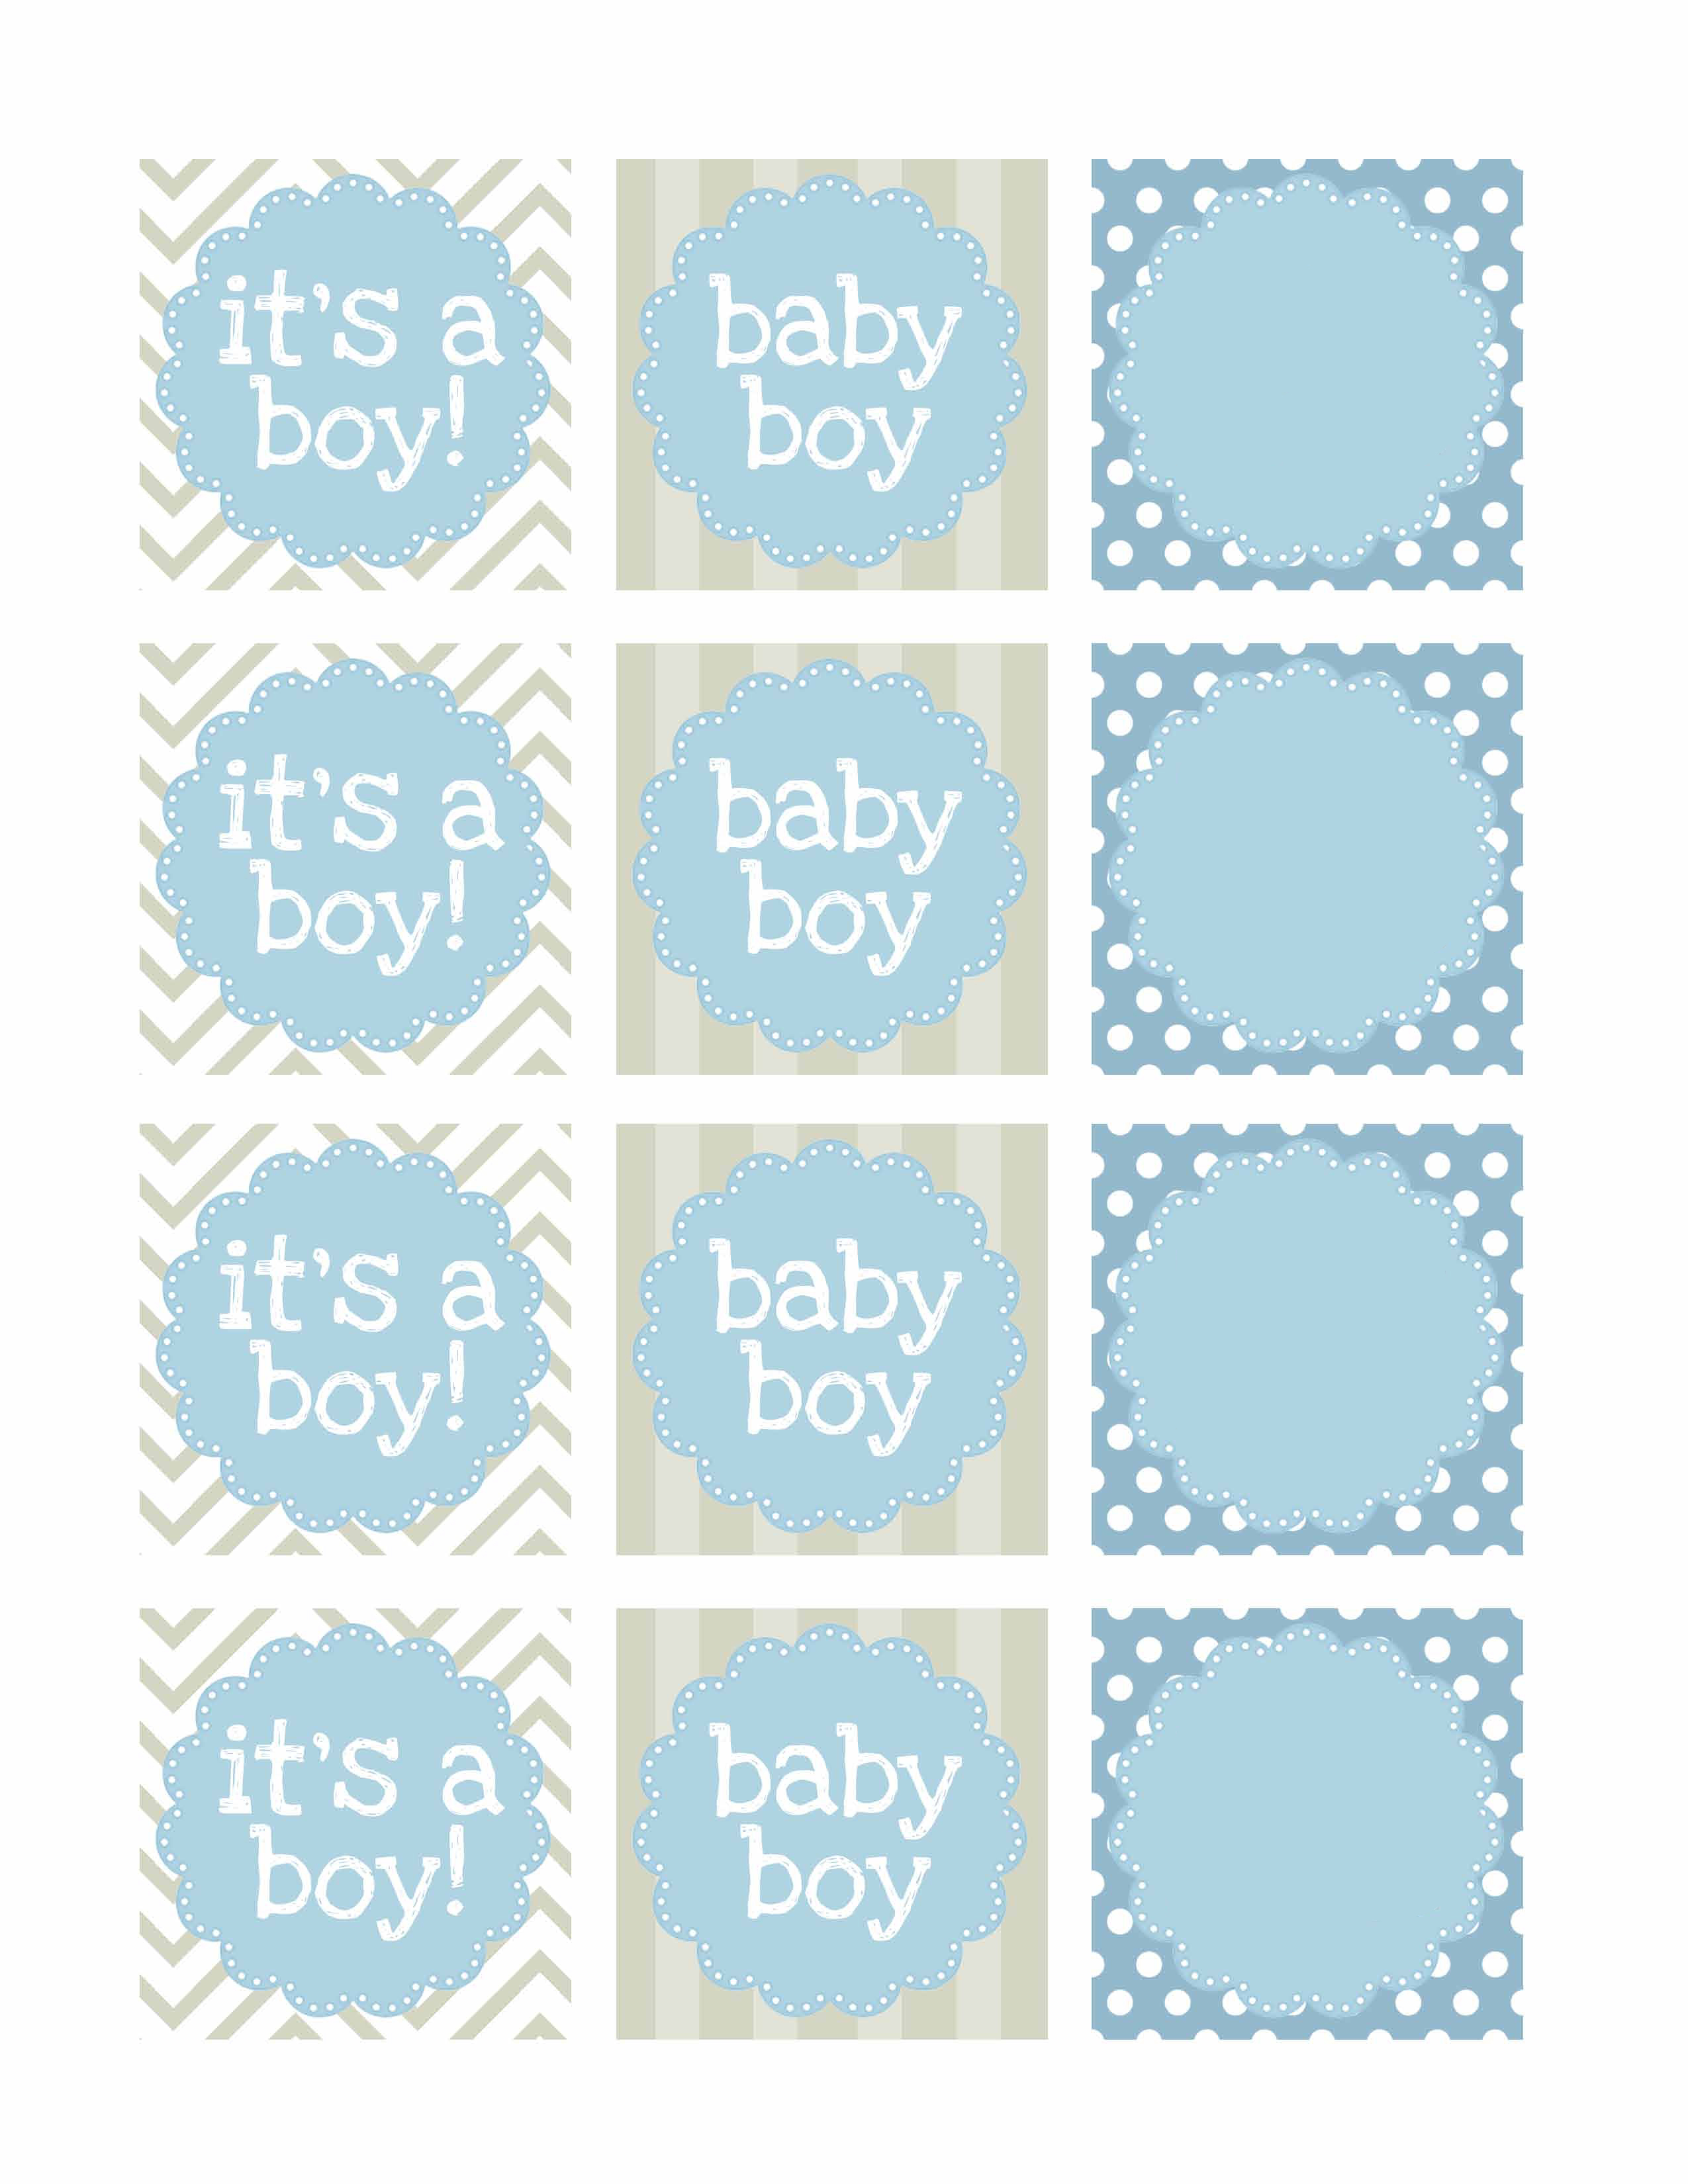 027 Favor Tags Template Ideas Free Baby Shower ~ Ulyssesroom - Free Printable Baby Shower Favor Tags